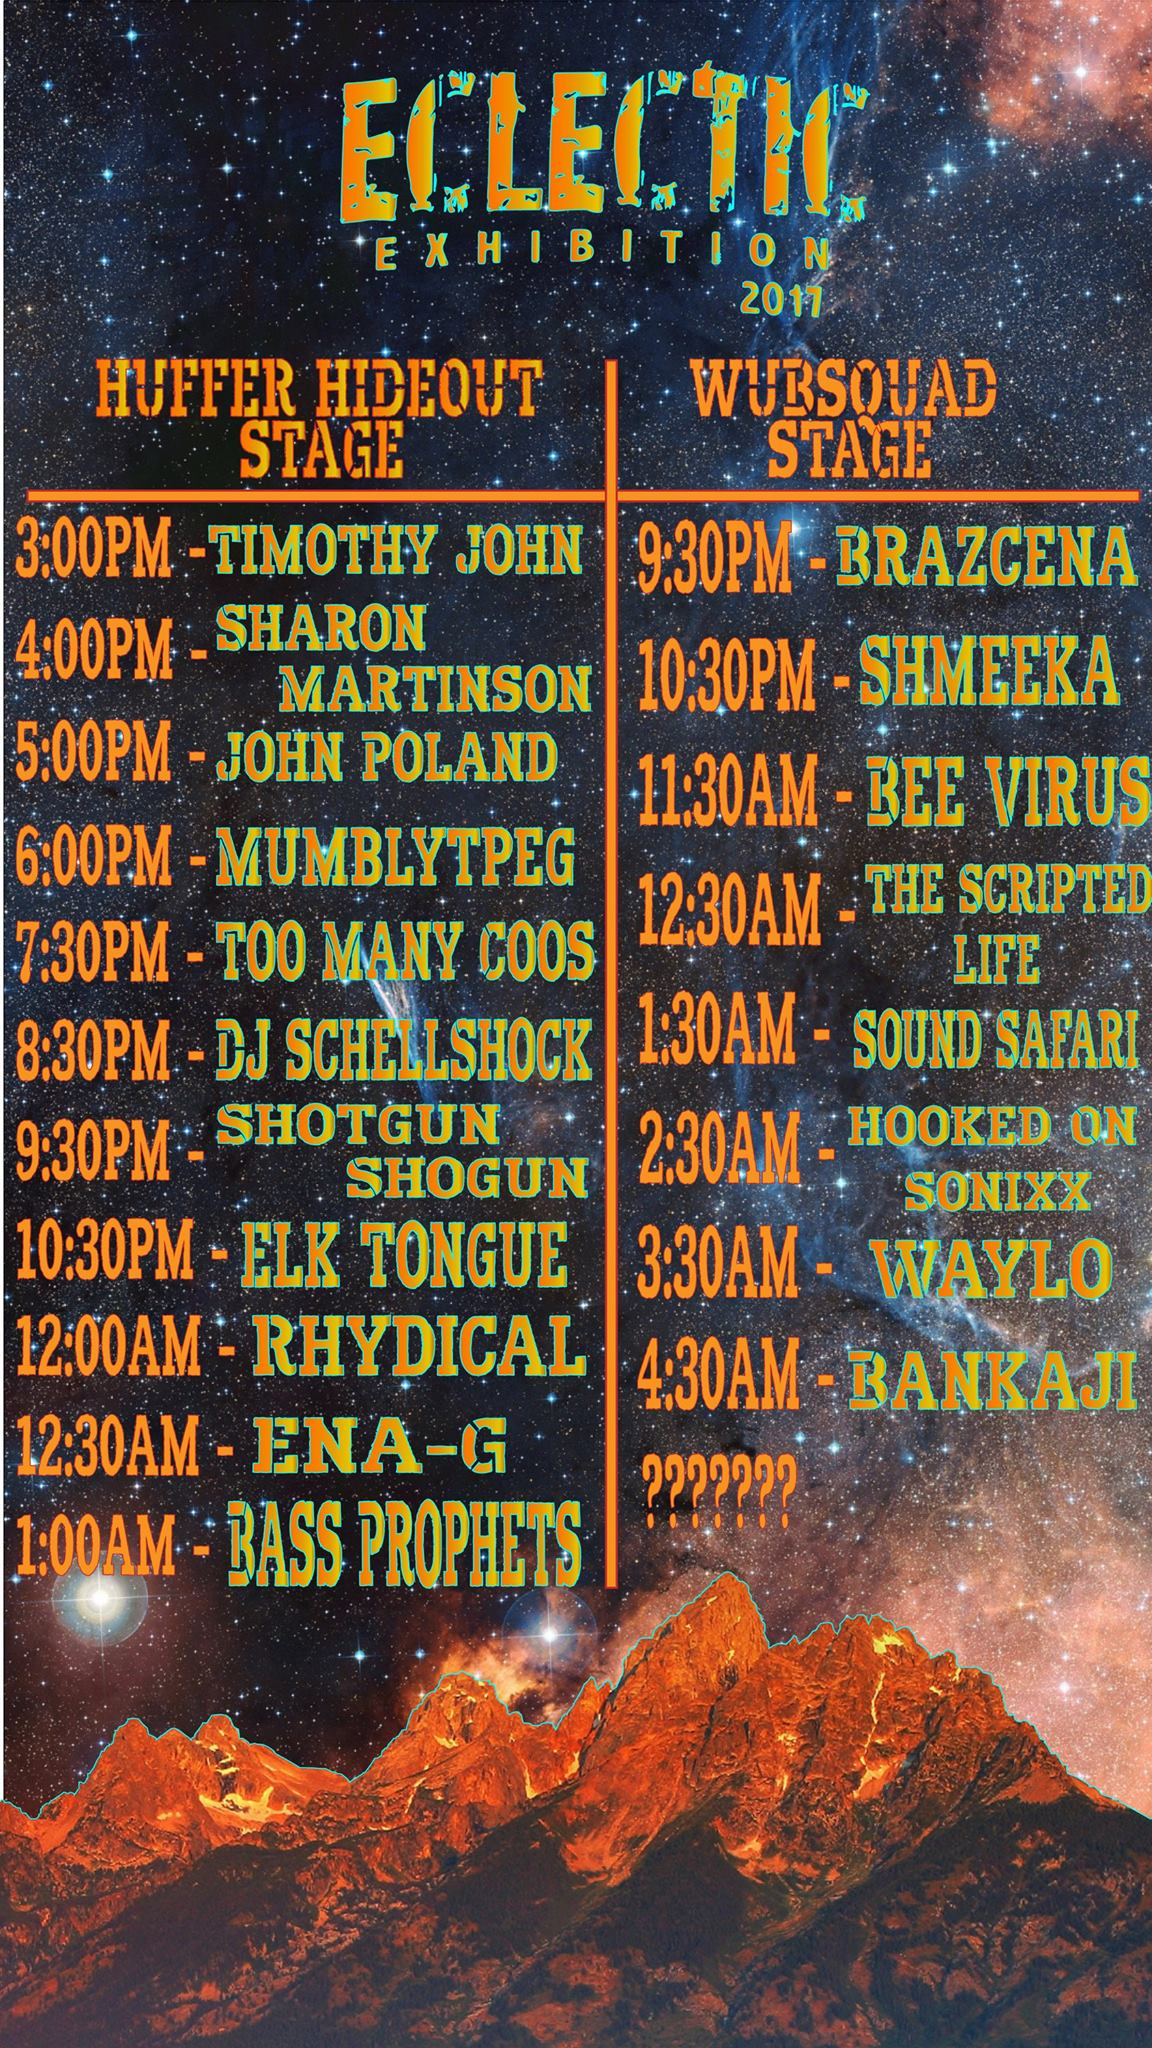 2017-08-16 Eclectic Exhibition Music Festival Poster Lineup Centennial Wyoming.jpg